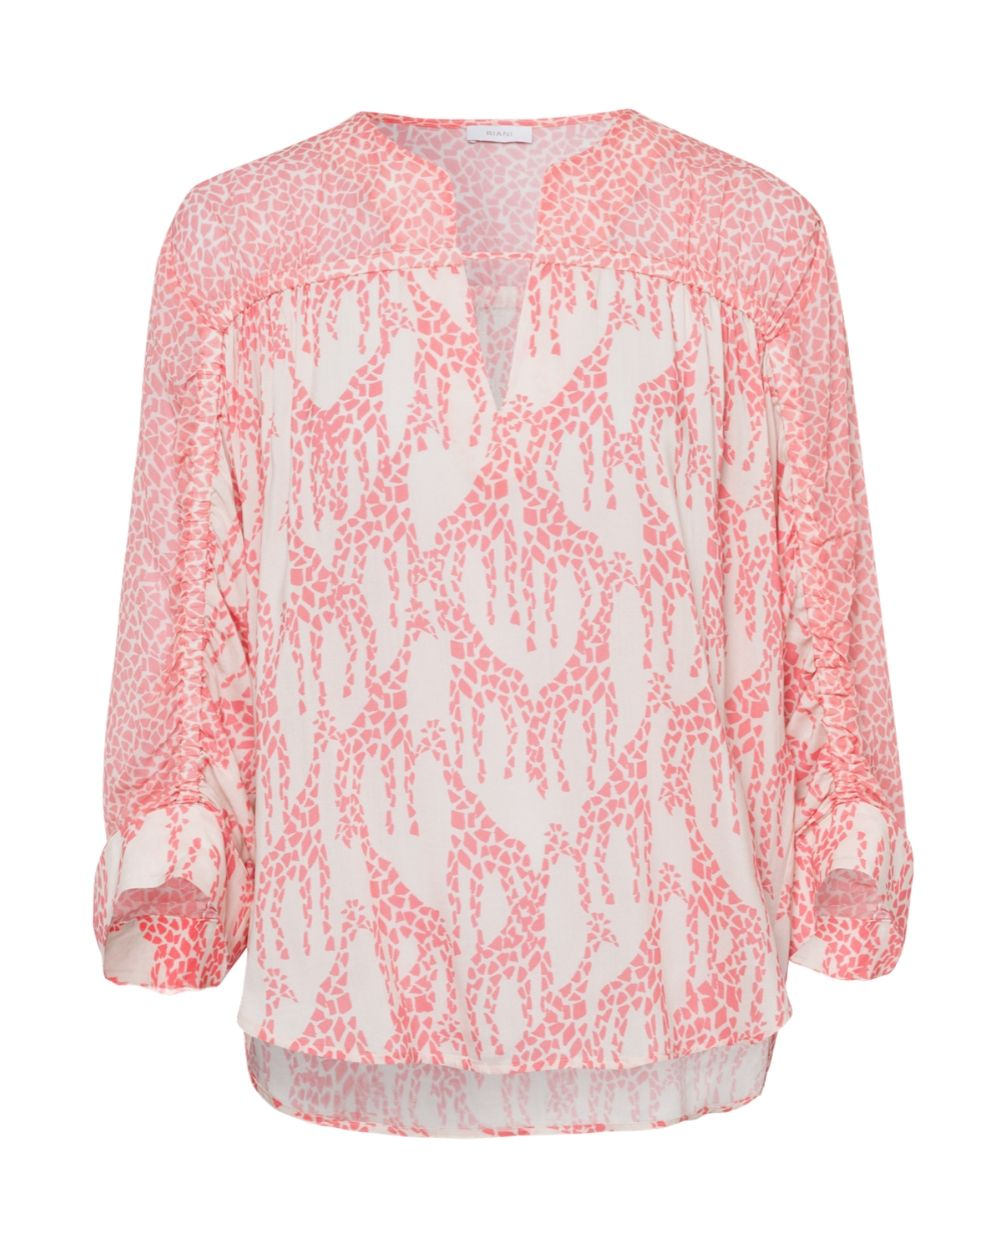 Riani Powder Patterned Blouse - Snooty Frox